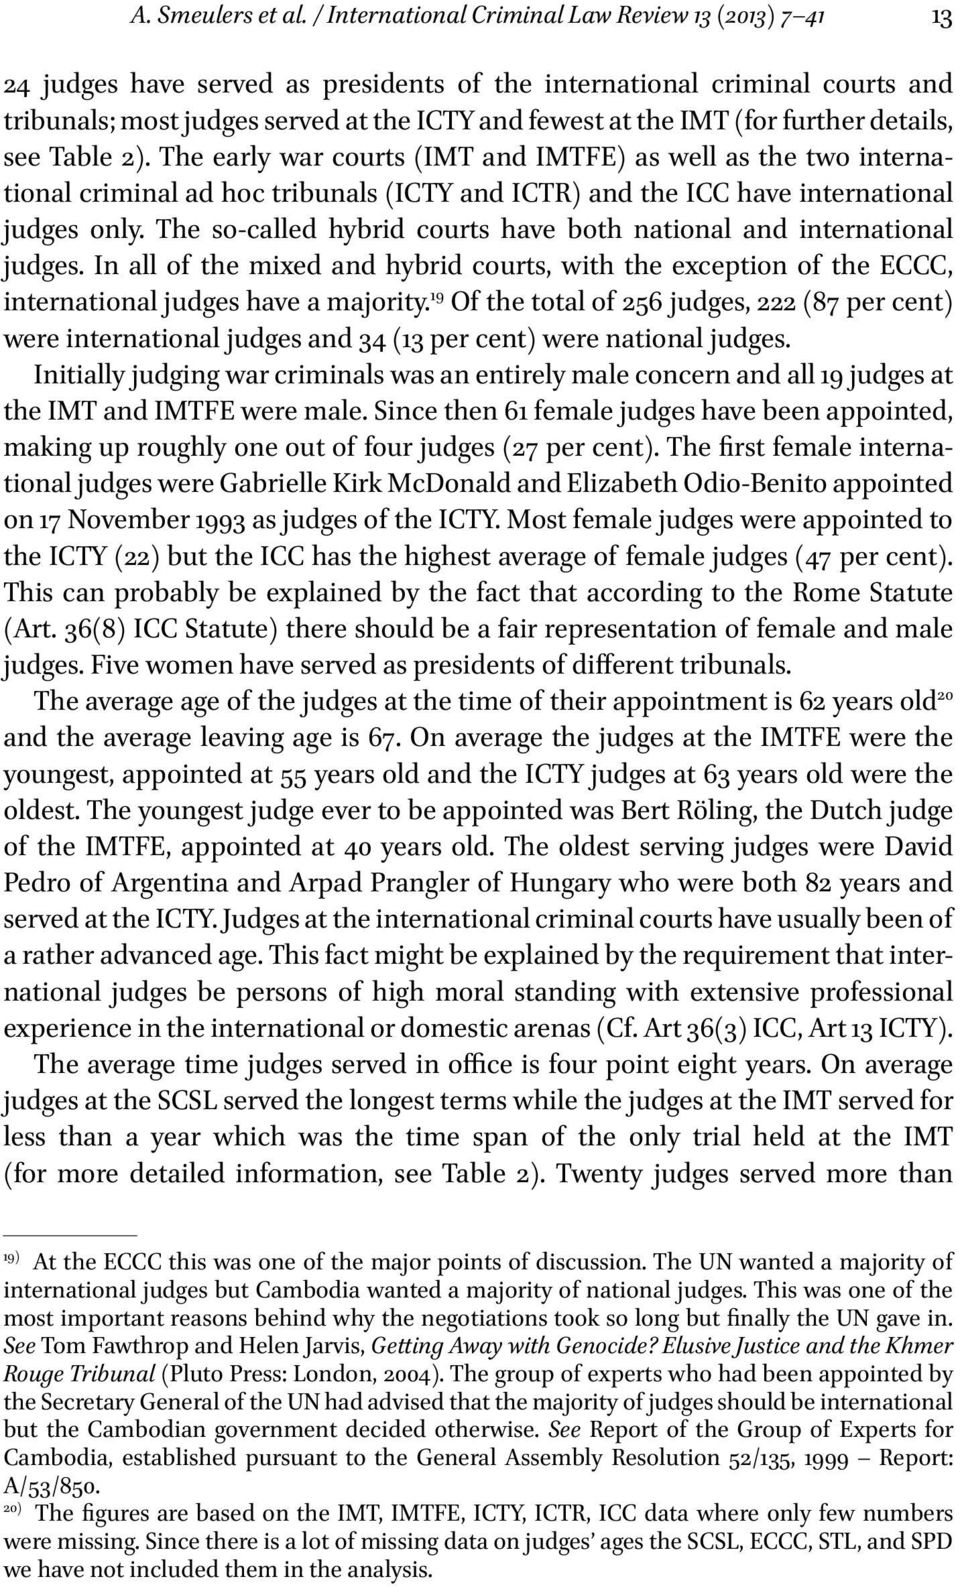 further details, see Table 2). The early war courts (IMT and IMTFE) as well as the two international criminal ad hoc tribunals (ICTY and ICTR) and the ICC have international judges only.